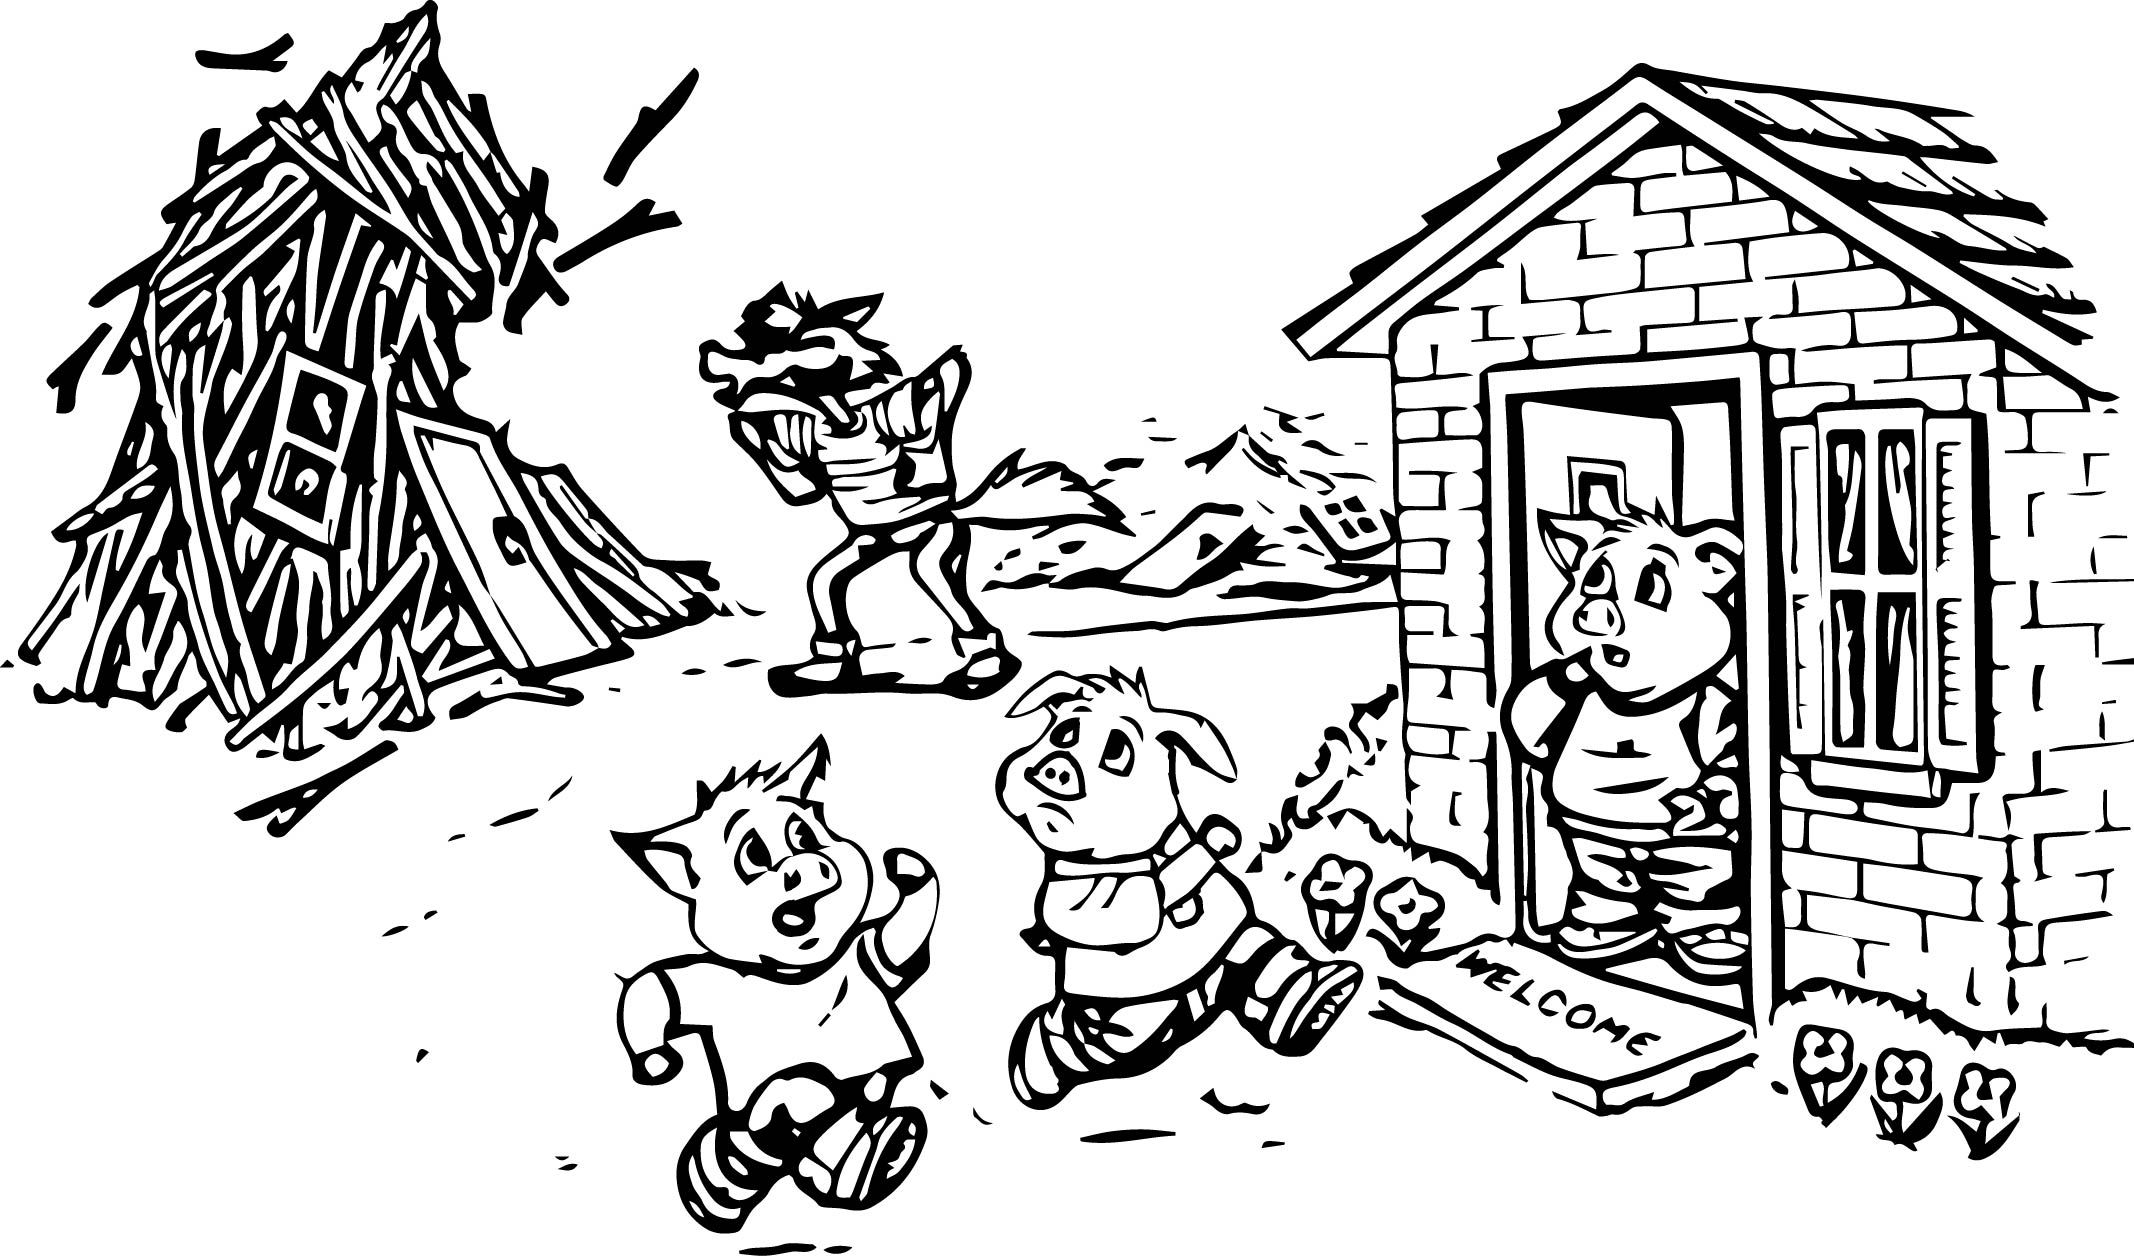 3 Little Pigs Coloring Page Three Little Pigs Mermaid Coloring